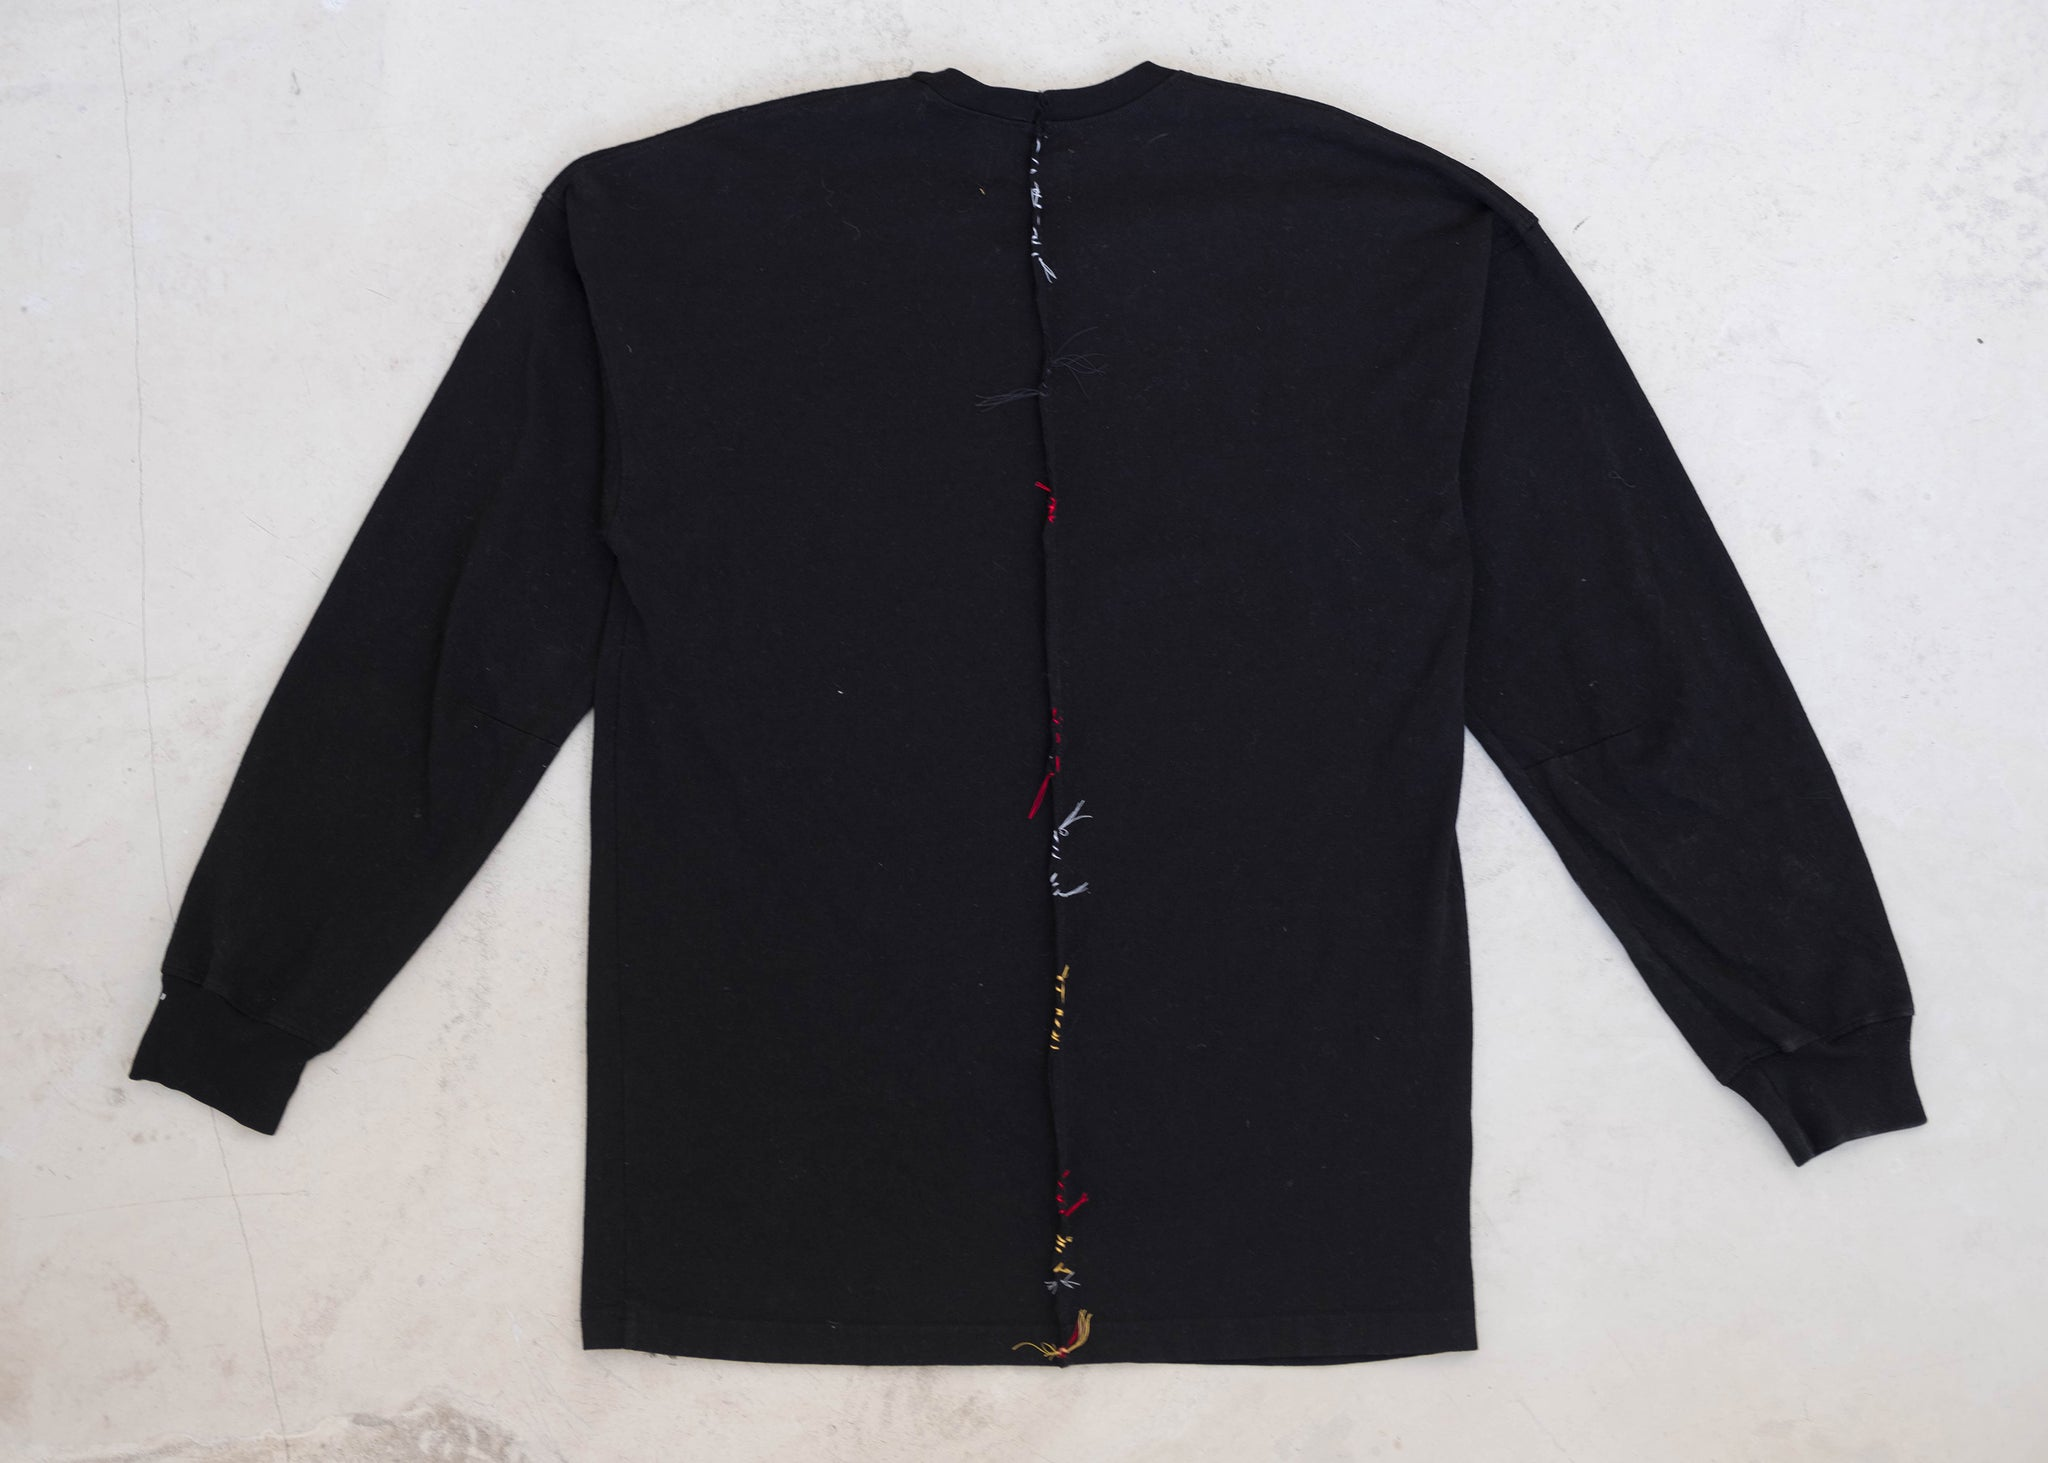 Long Sleeve Back-Slit Adorn Tee - Black/Multi